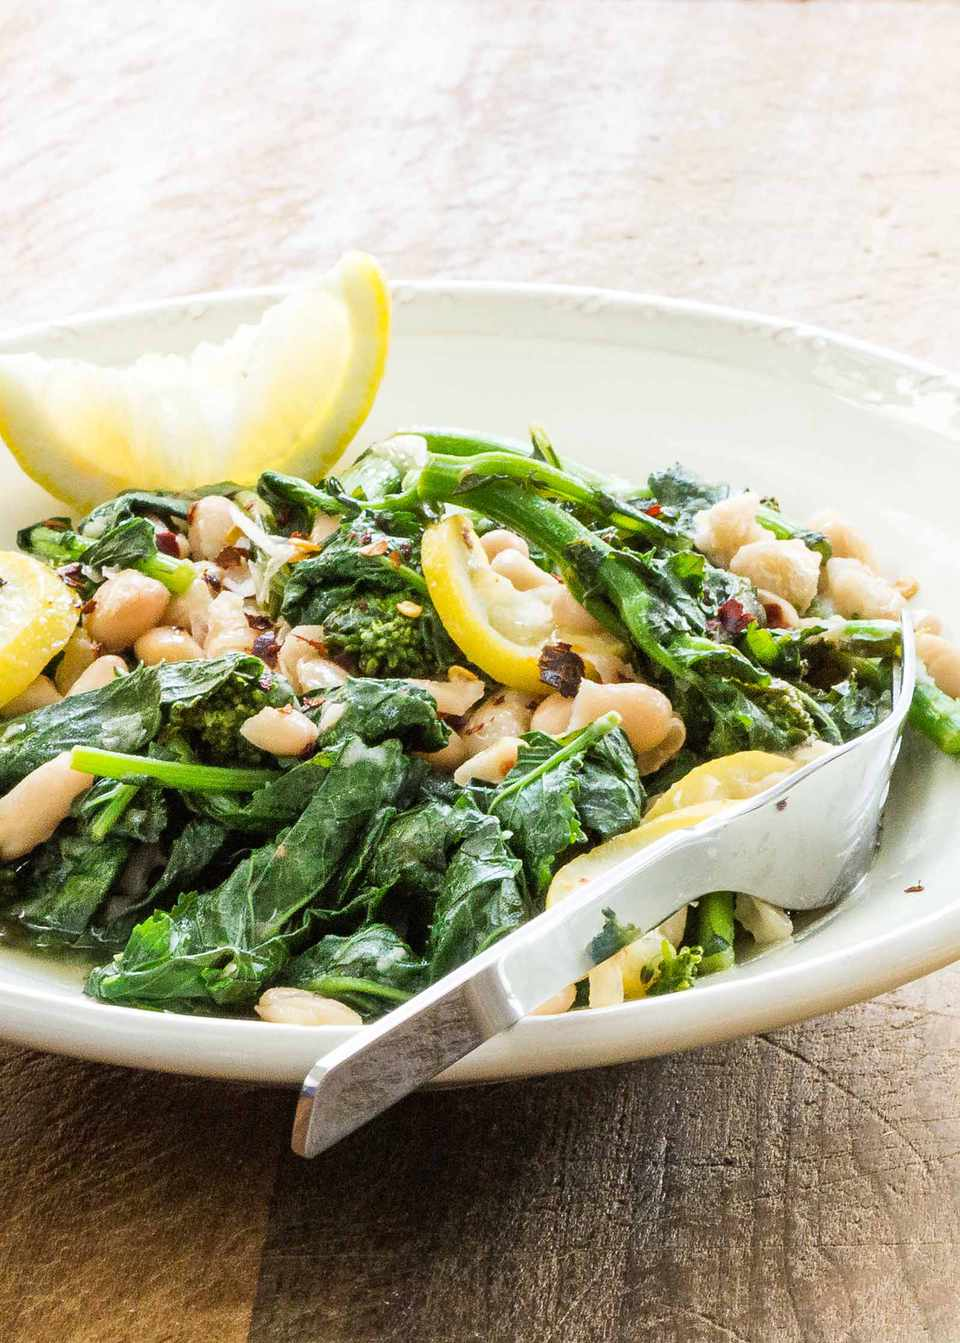 White Beans with Broccoli Rabe